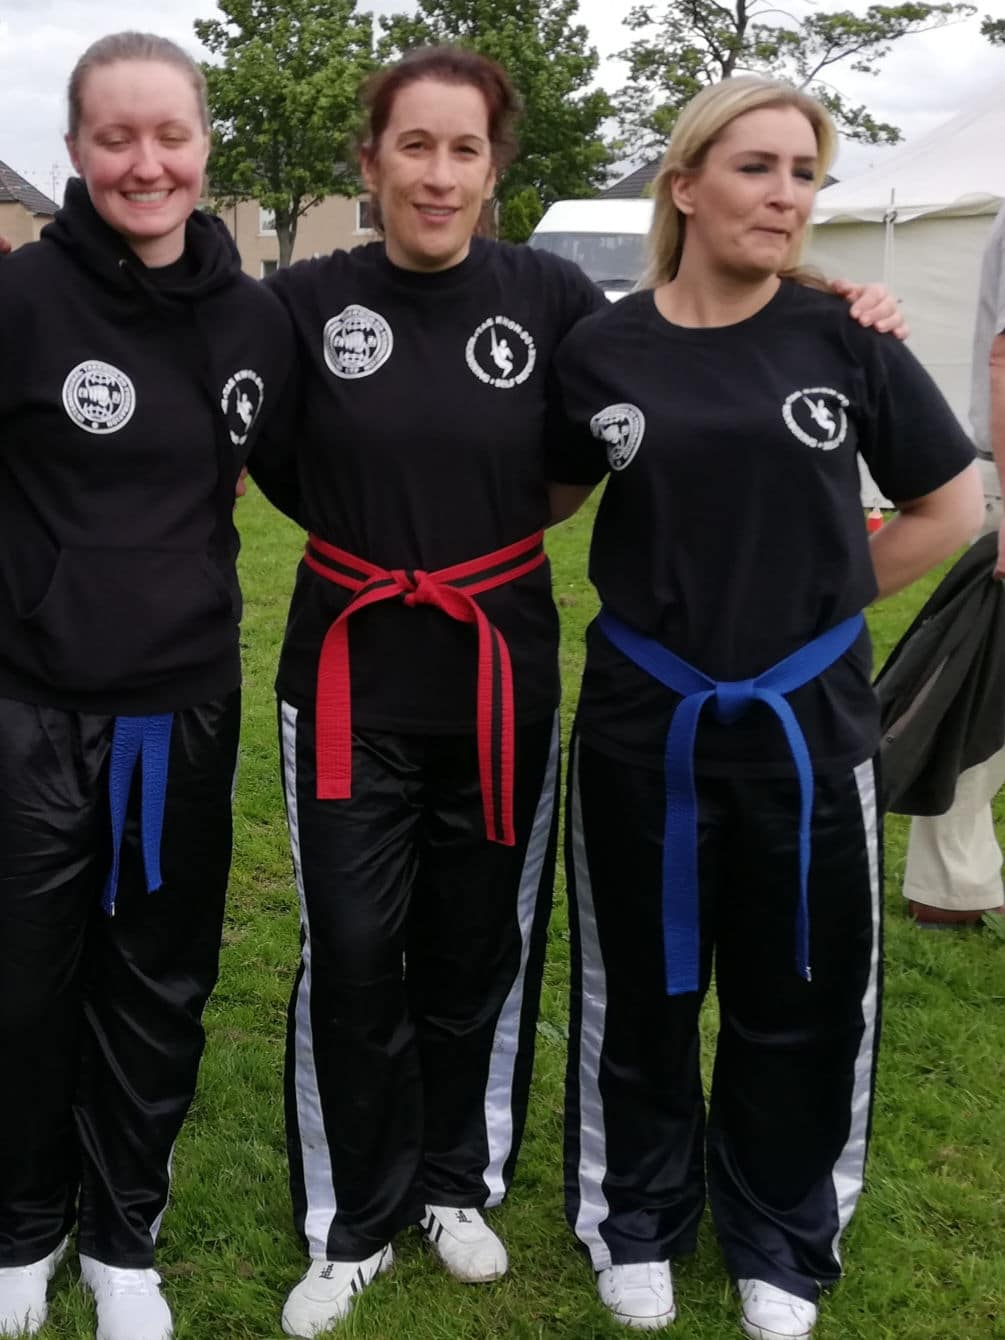 3 female self-defence students outside smiling for photo